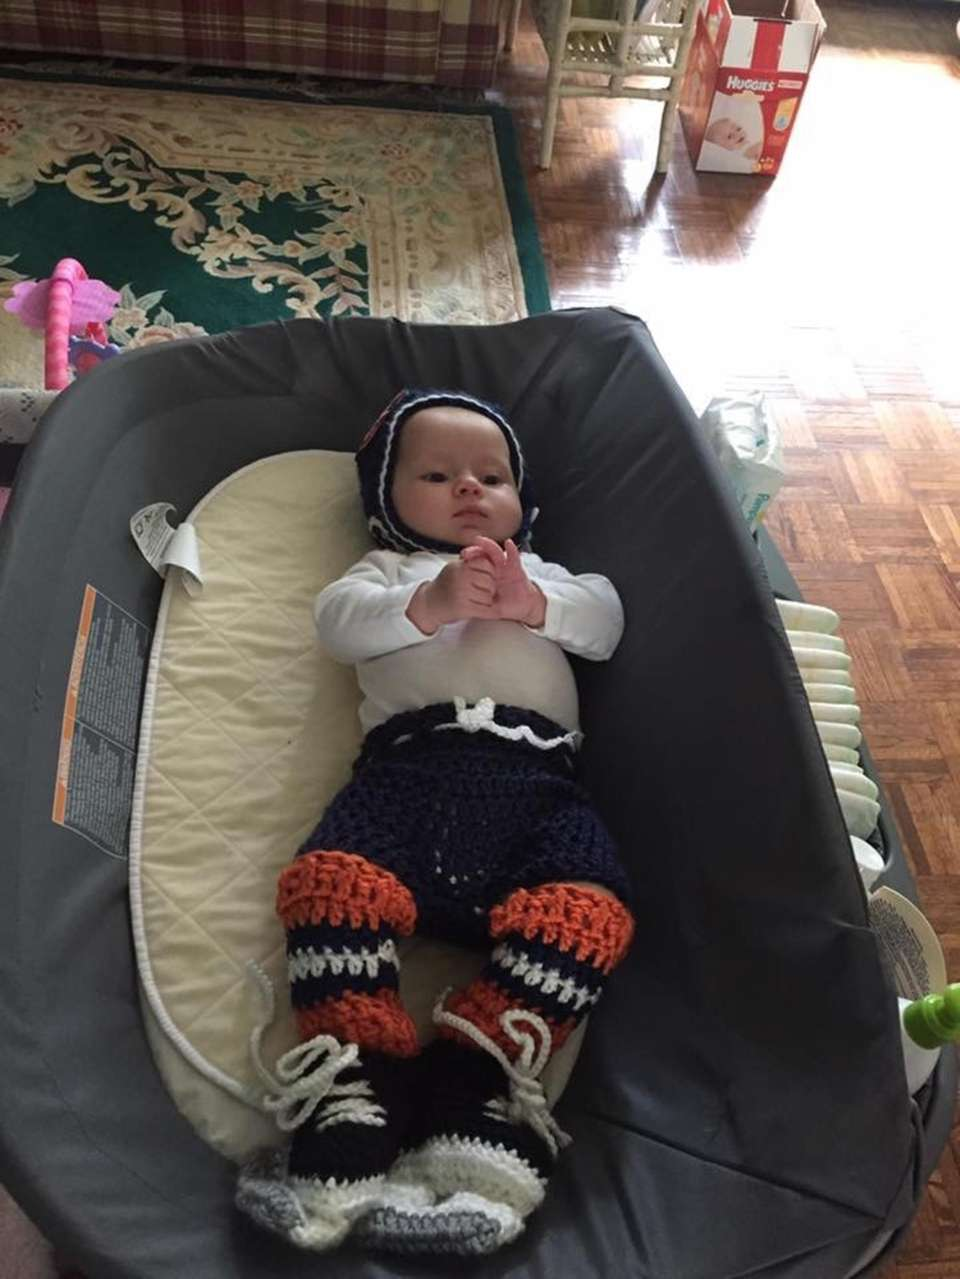 My daughter being an islanders fan